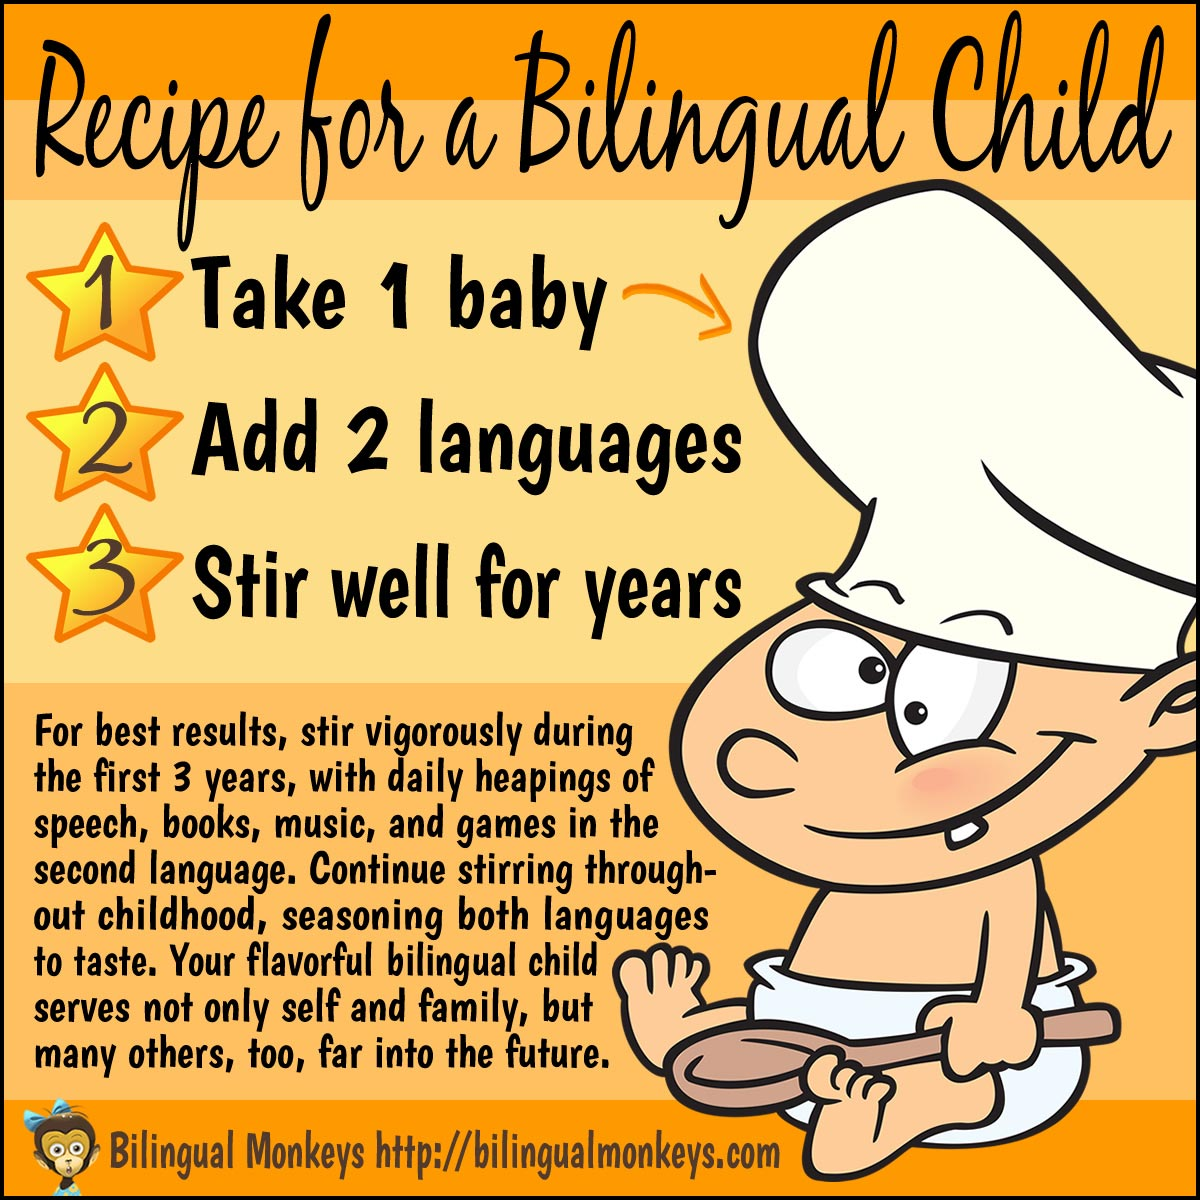 Recipe for a Bilingual Child (INFOGRAPHIC)